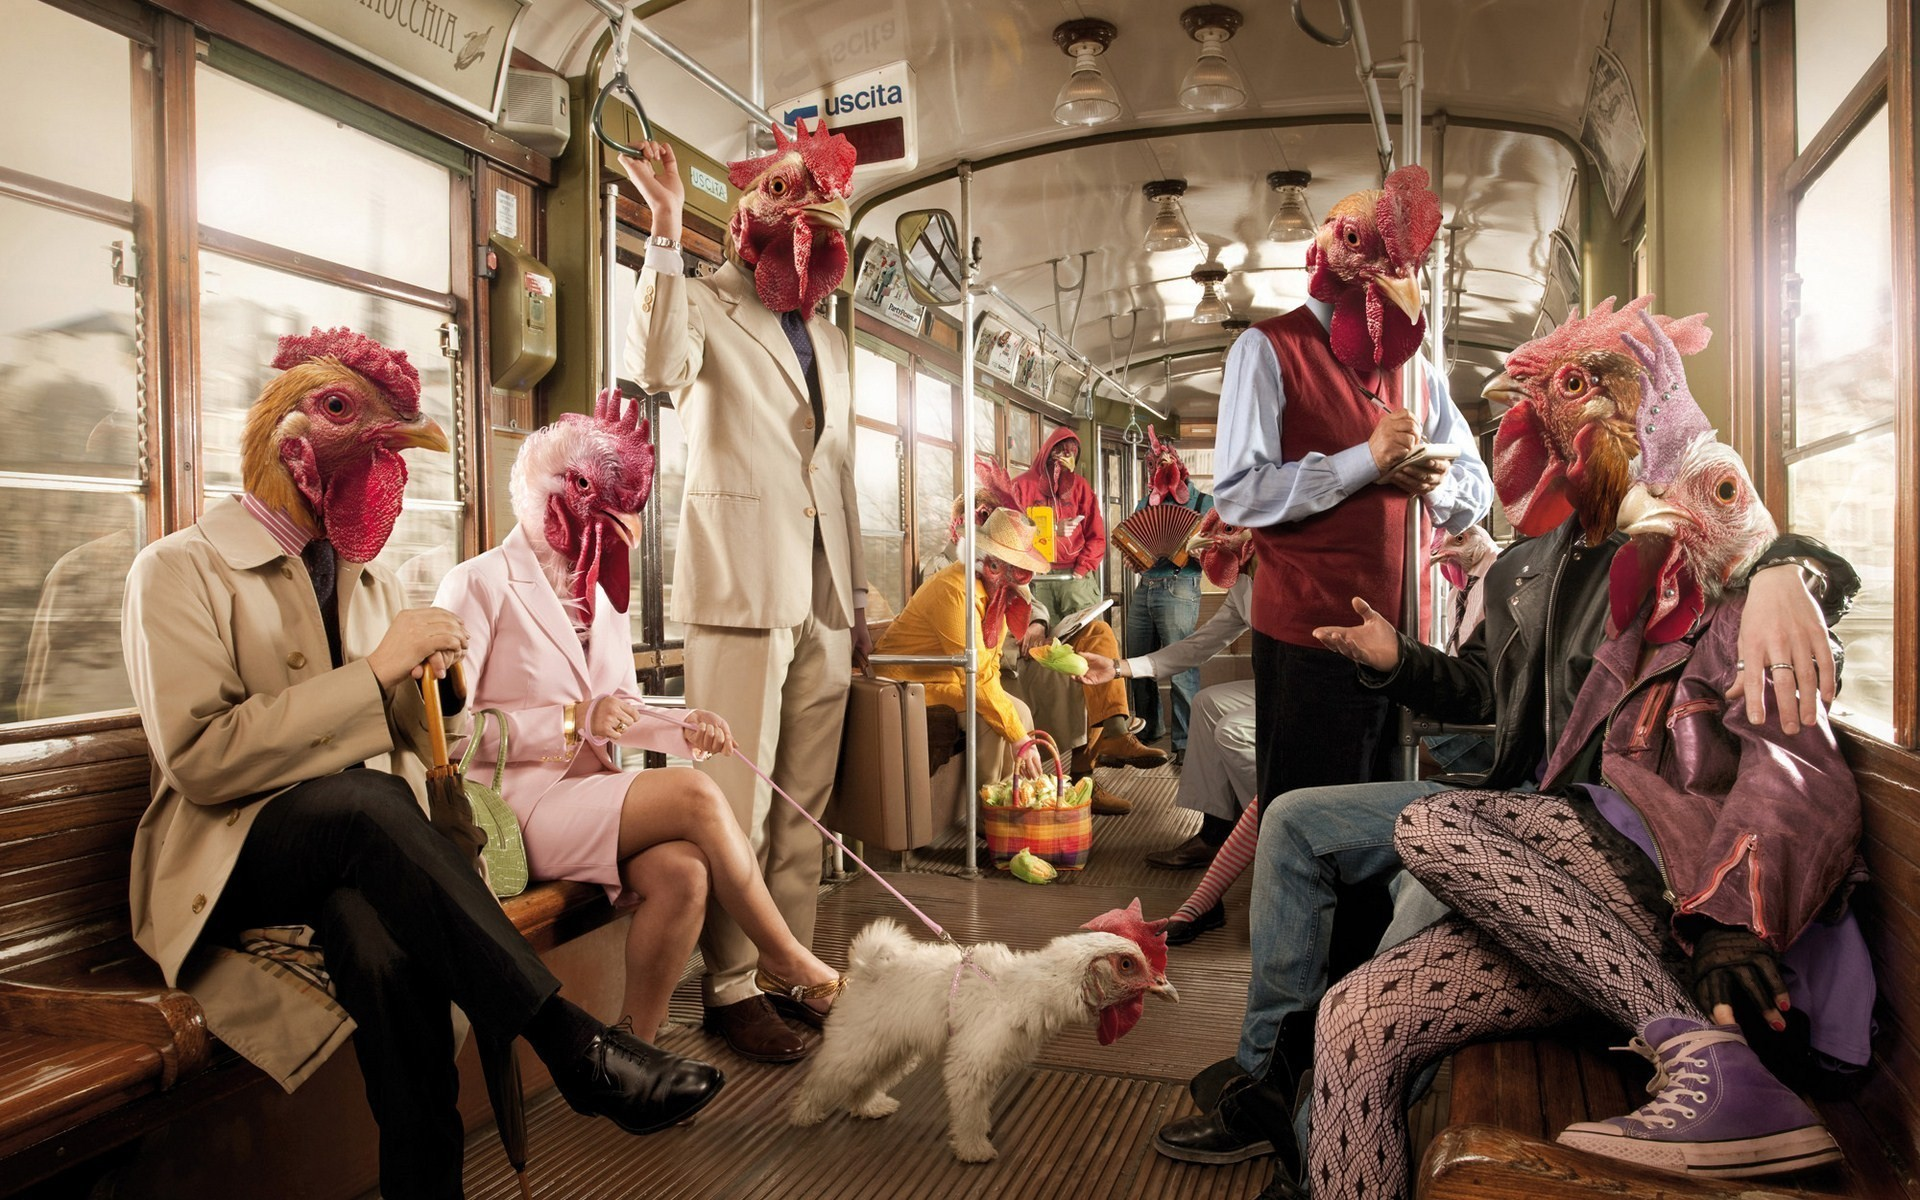 chicken Men funny subway HD Wallpaper